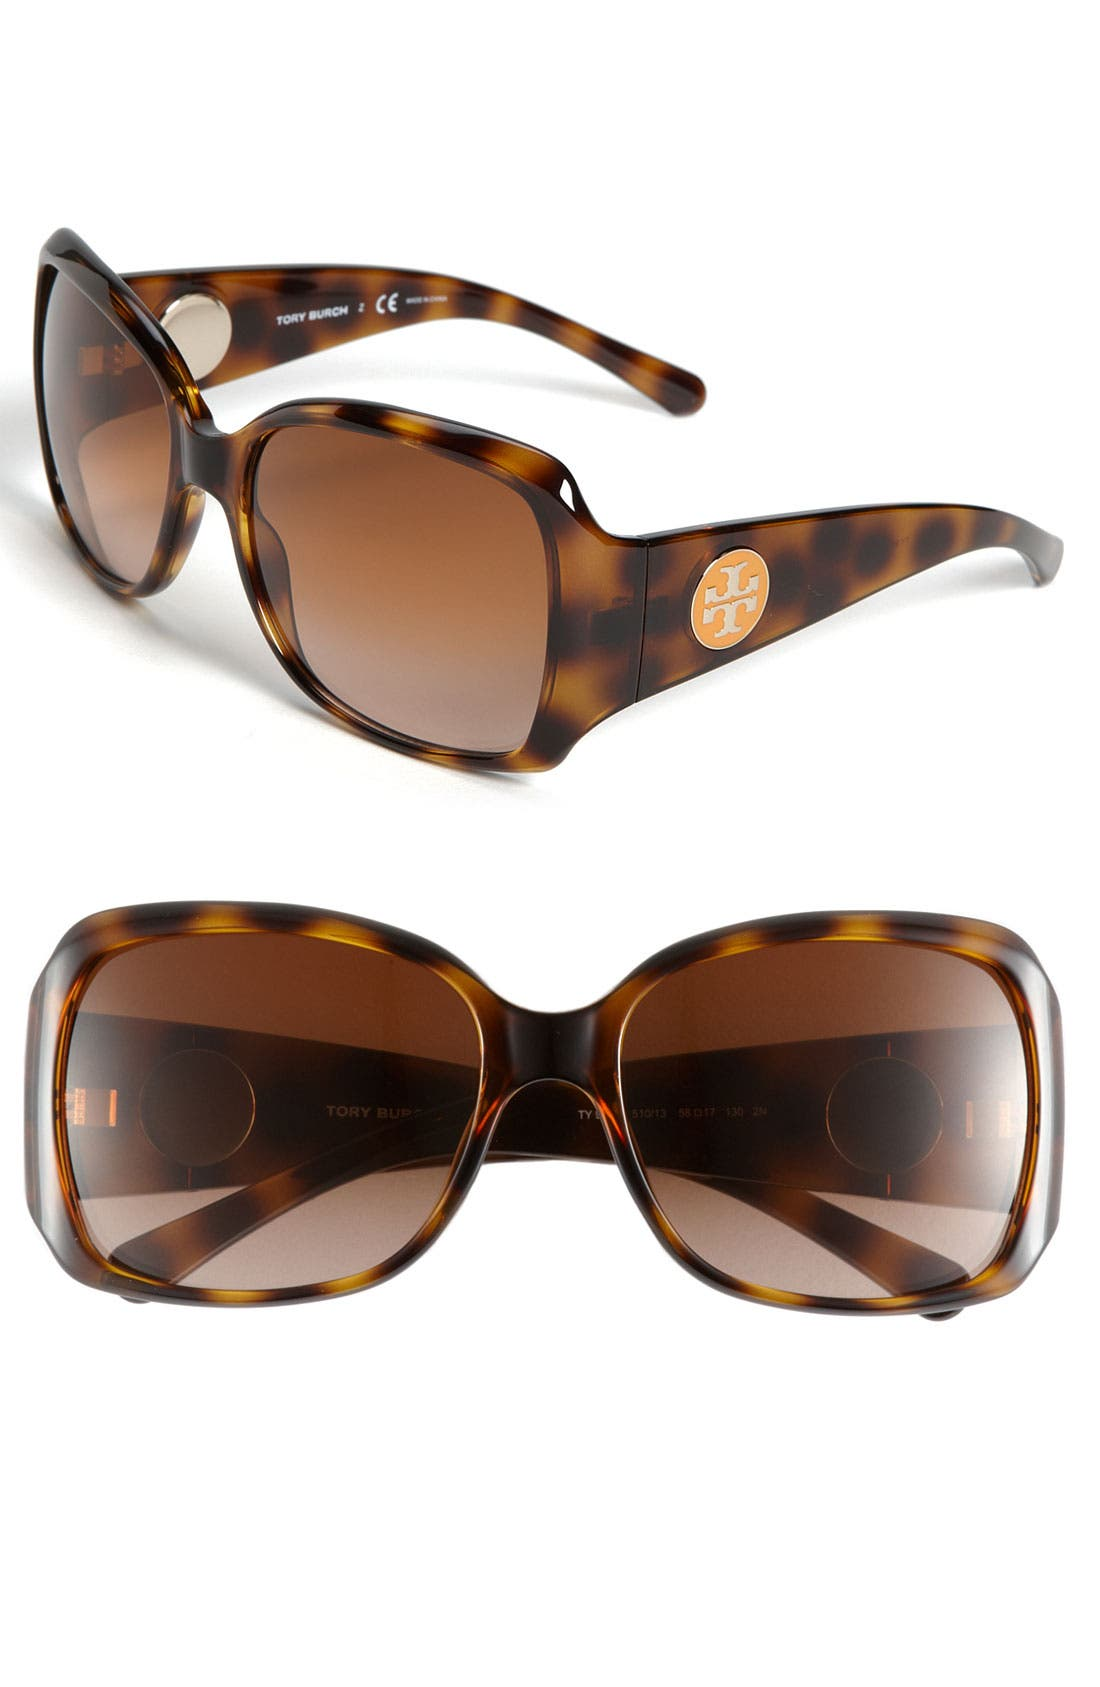 Main Image - Tory Burch 58mm Square Sunglasses (Online Only)